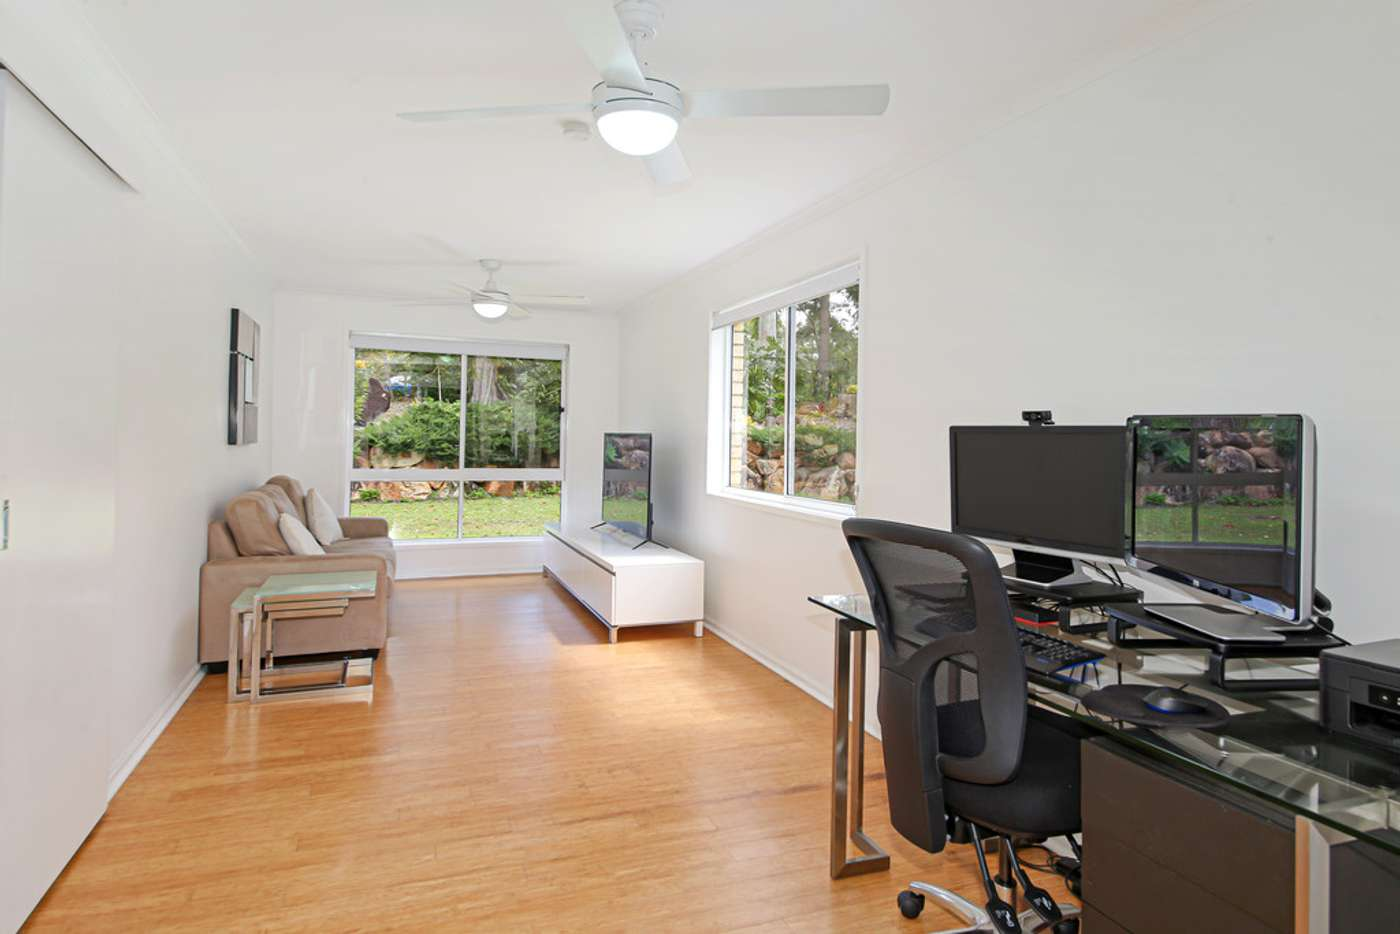 Sixth view of Homely house listing, 17 Marlock Court, Doonan QLD 4562